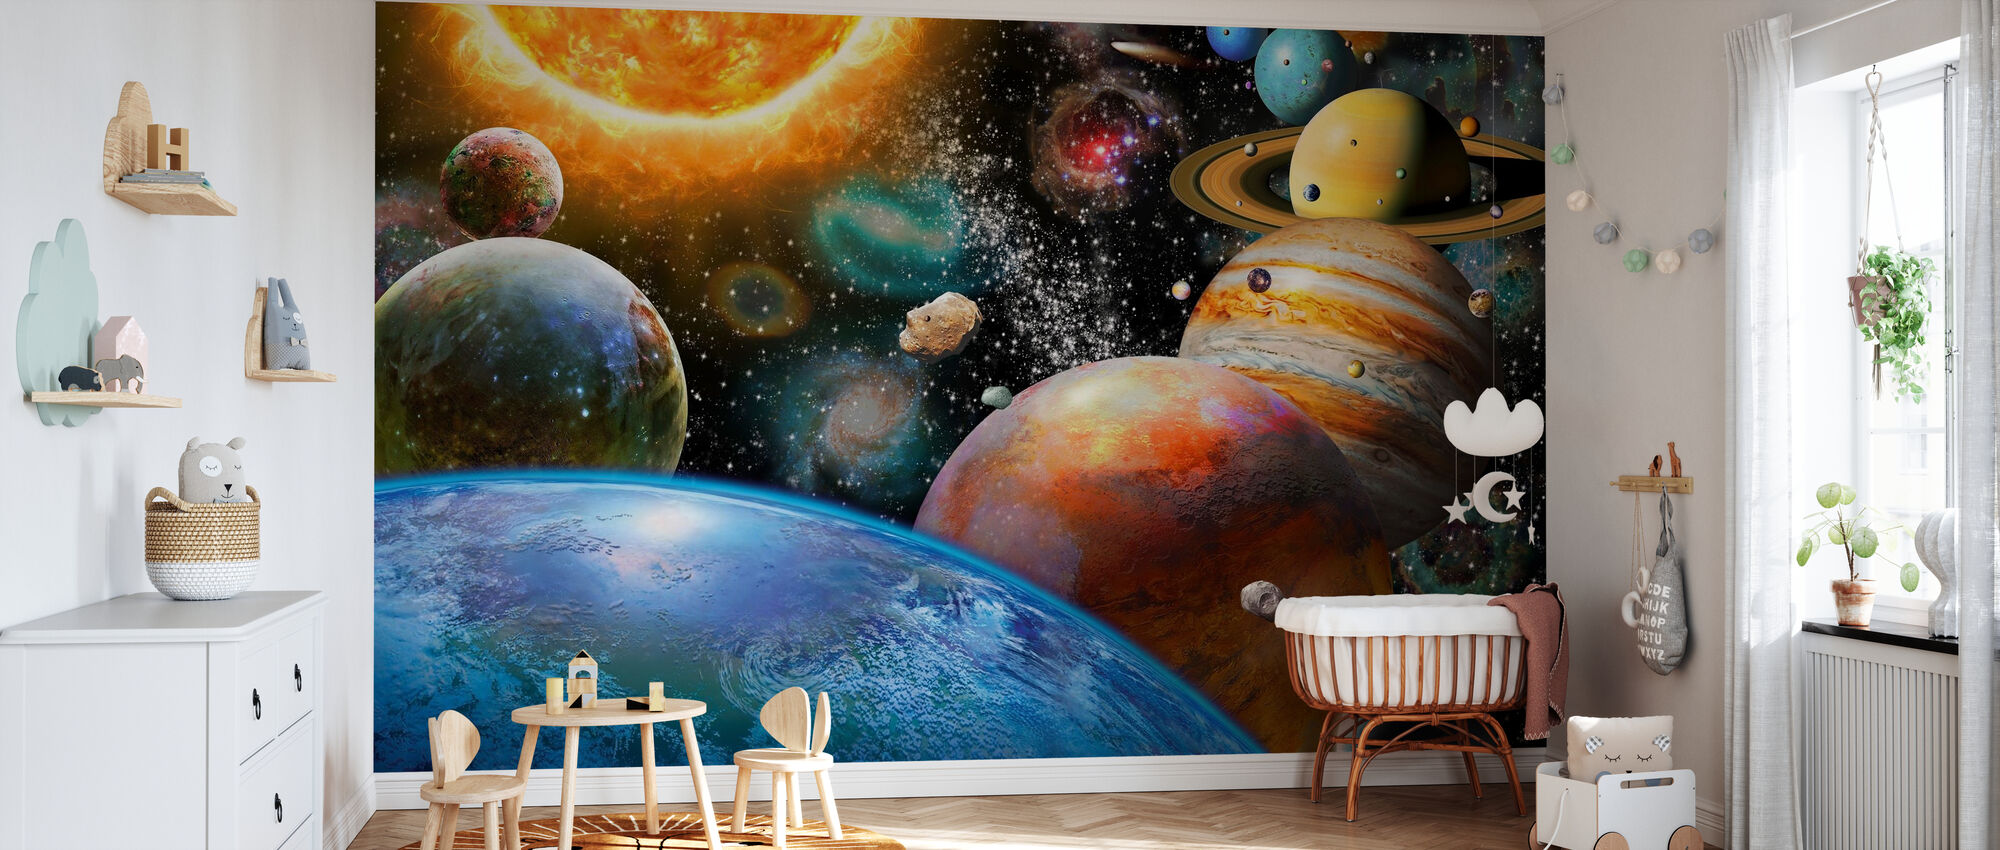 Planets and Their Moons - Wallpaper - Nursery